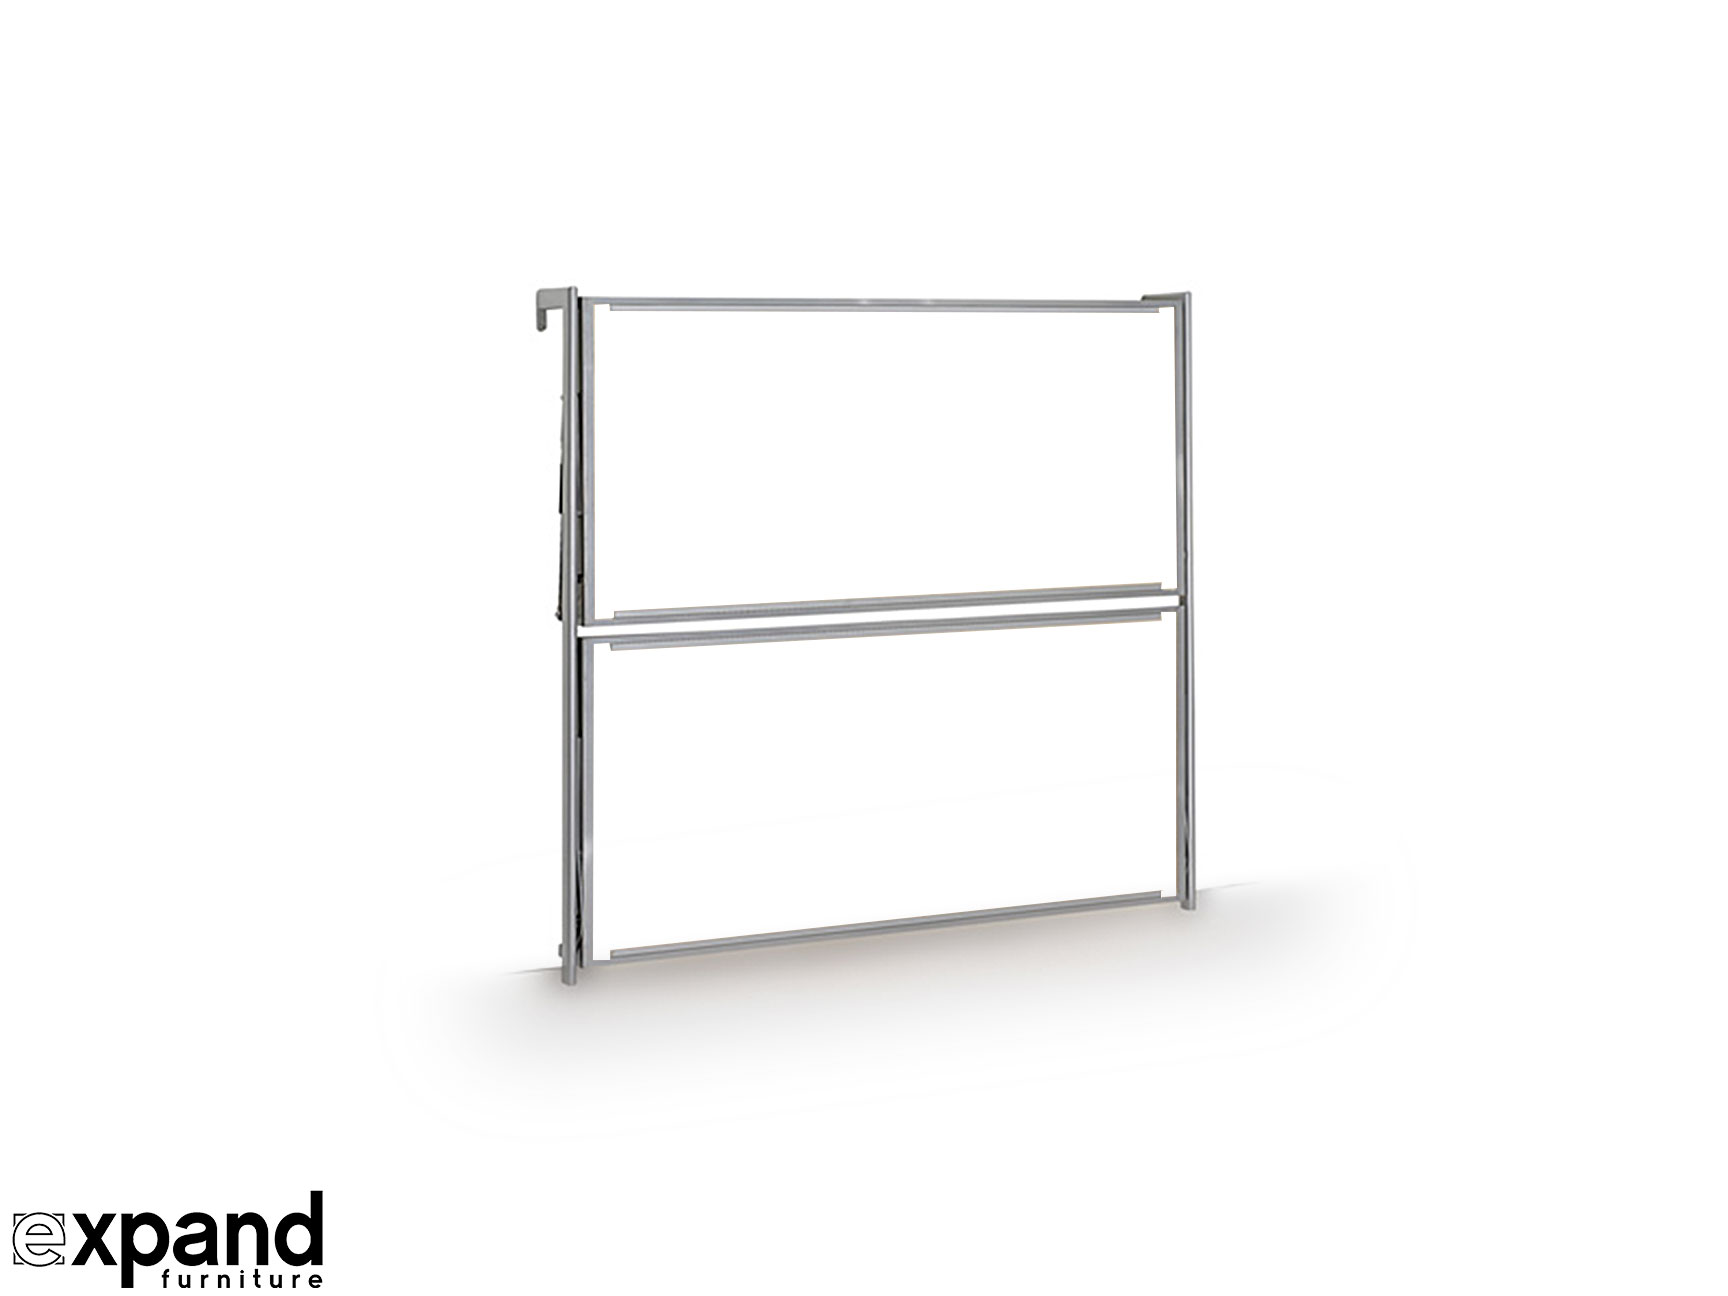 Compatto murphy bunk bed from italy expand furniture for Italian wall bed system